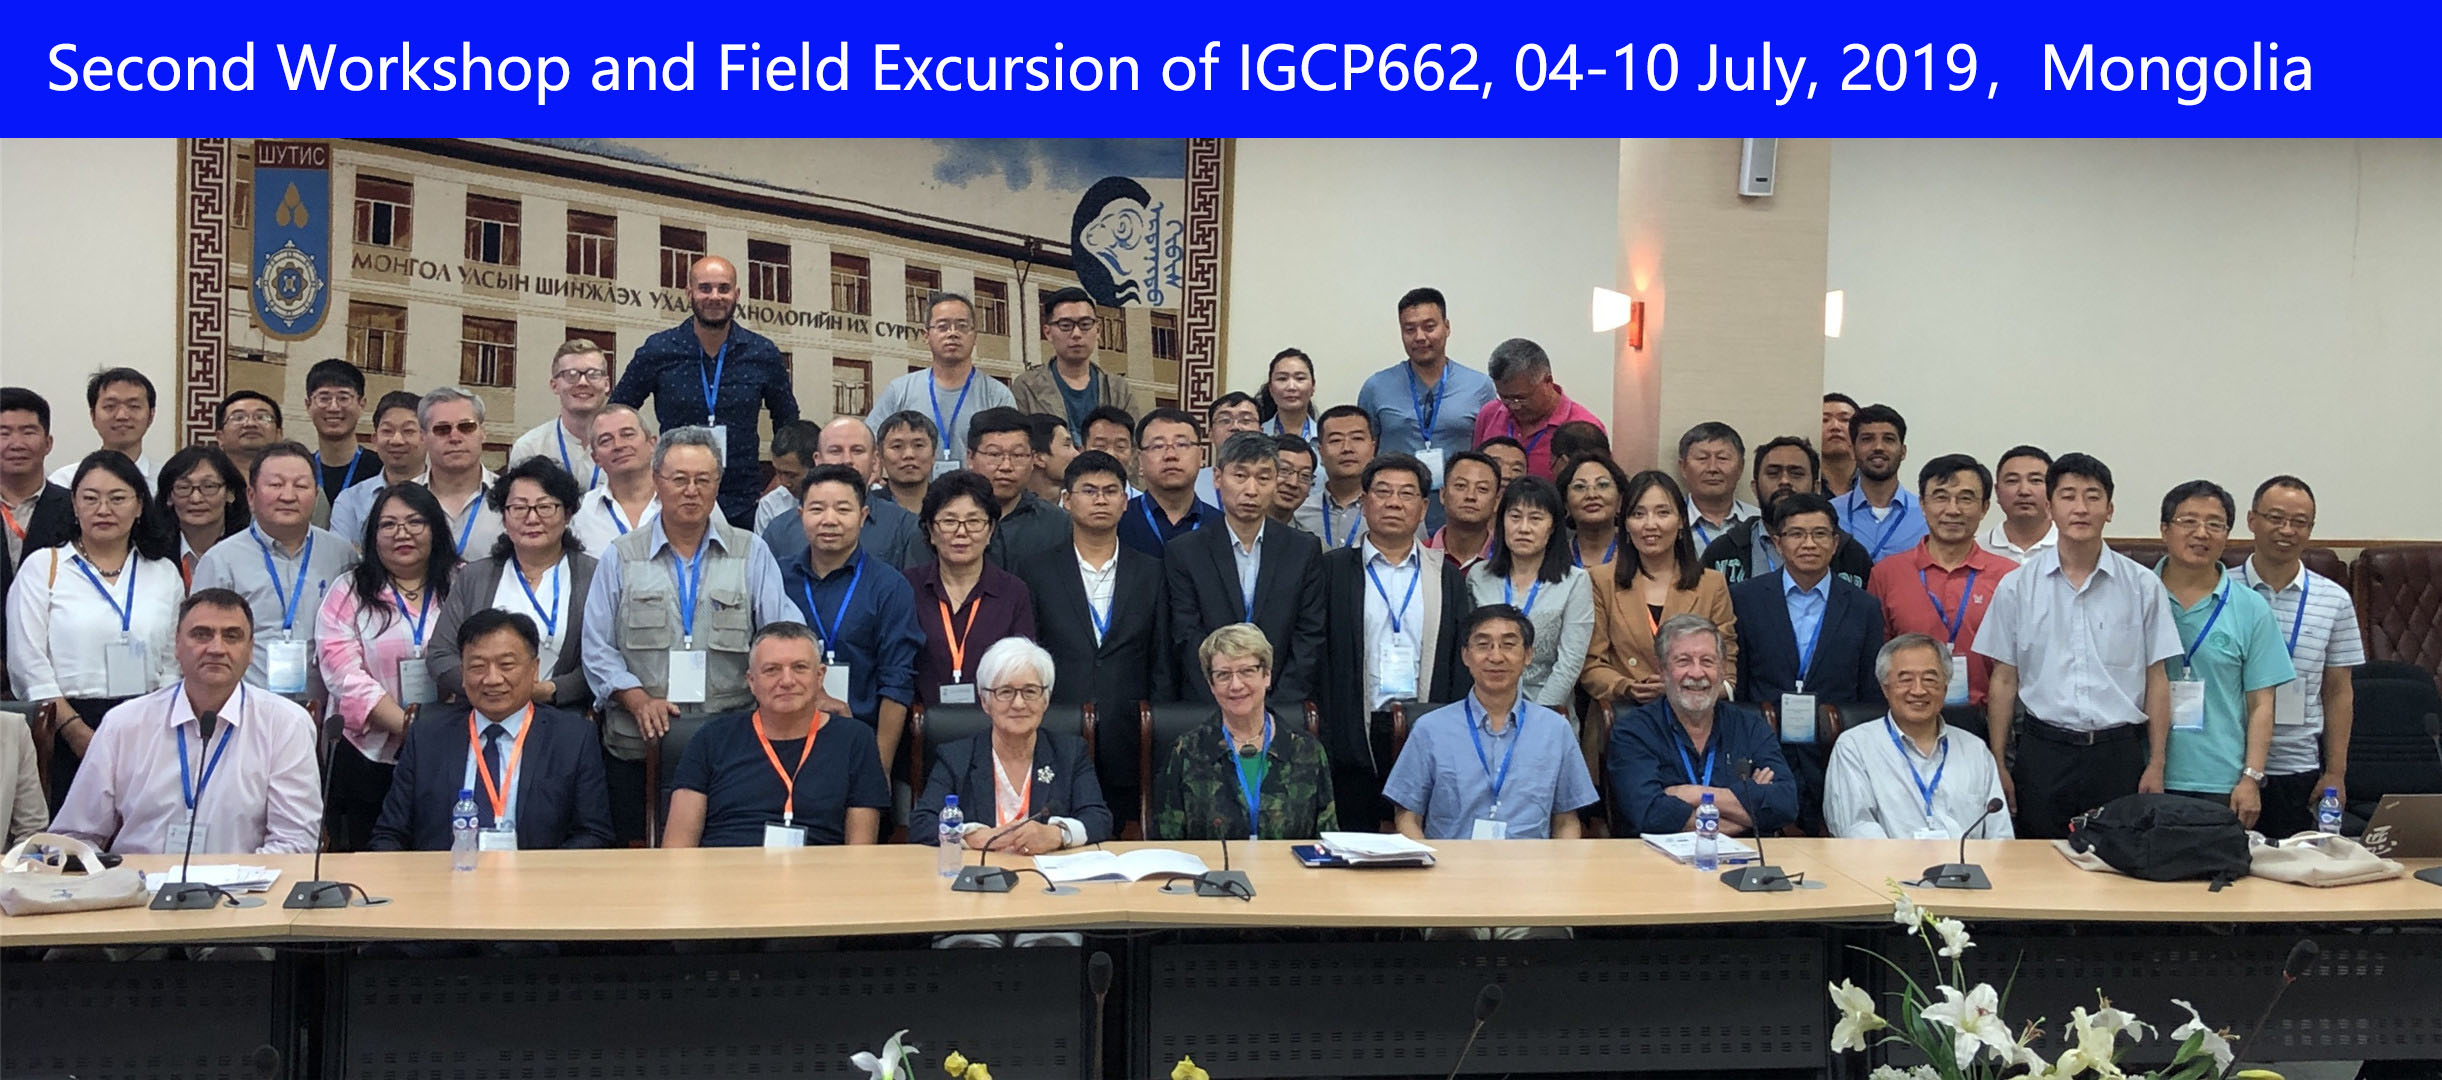 3. Photos of the Second Workshop and Field Excursion of IGCP662, 04-10 July, 2019,Mongolia